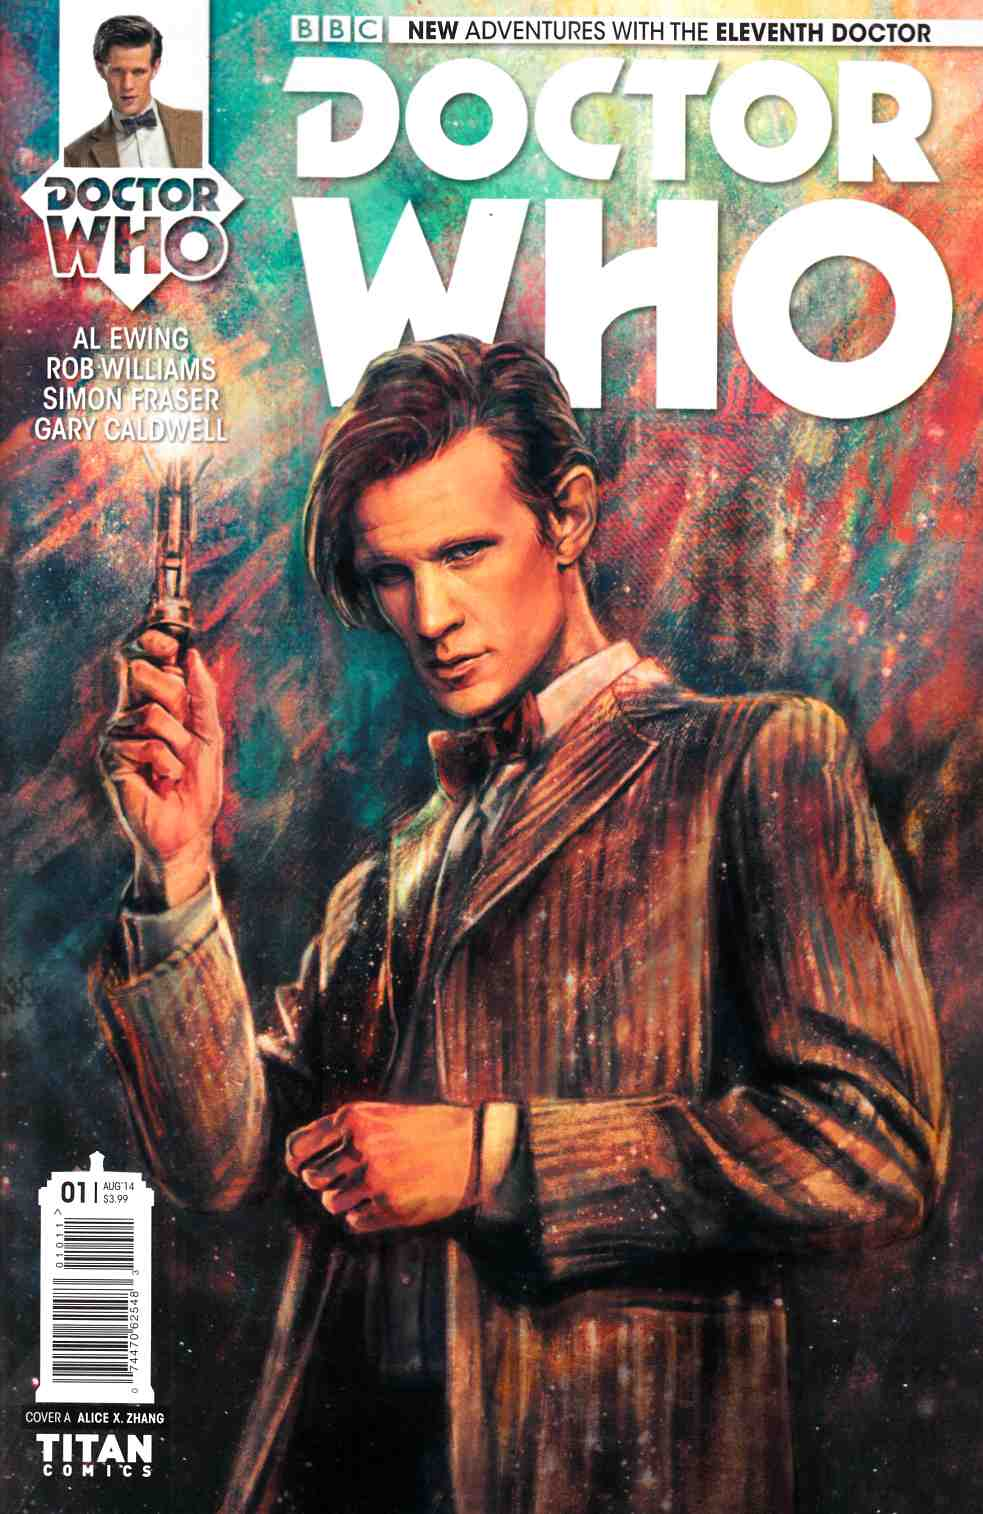 Doctor Who 11th Doctor #1 [Comic] THUMBNAIL